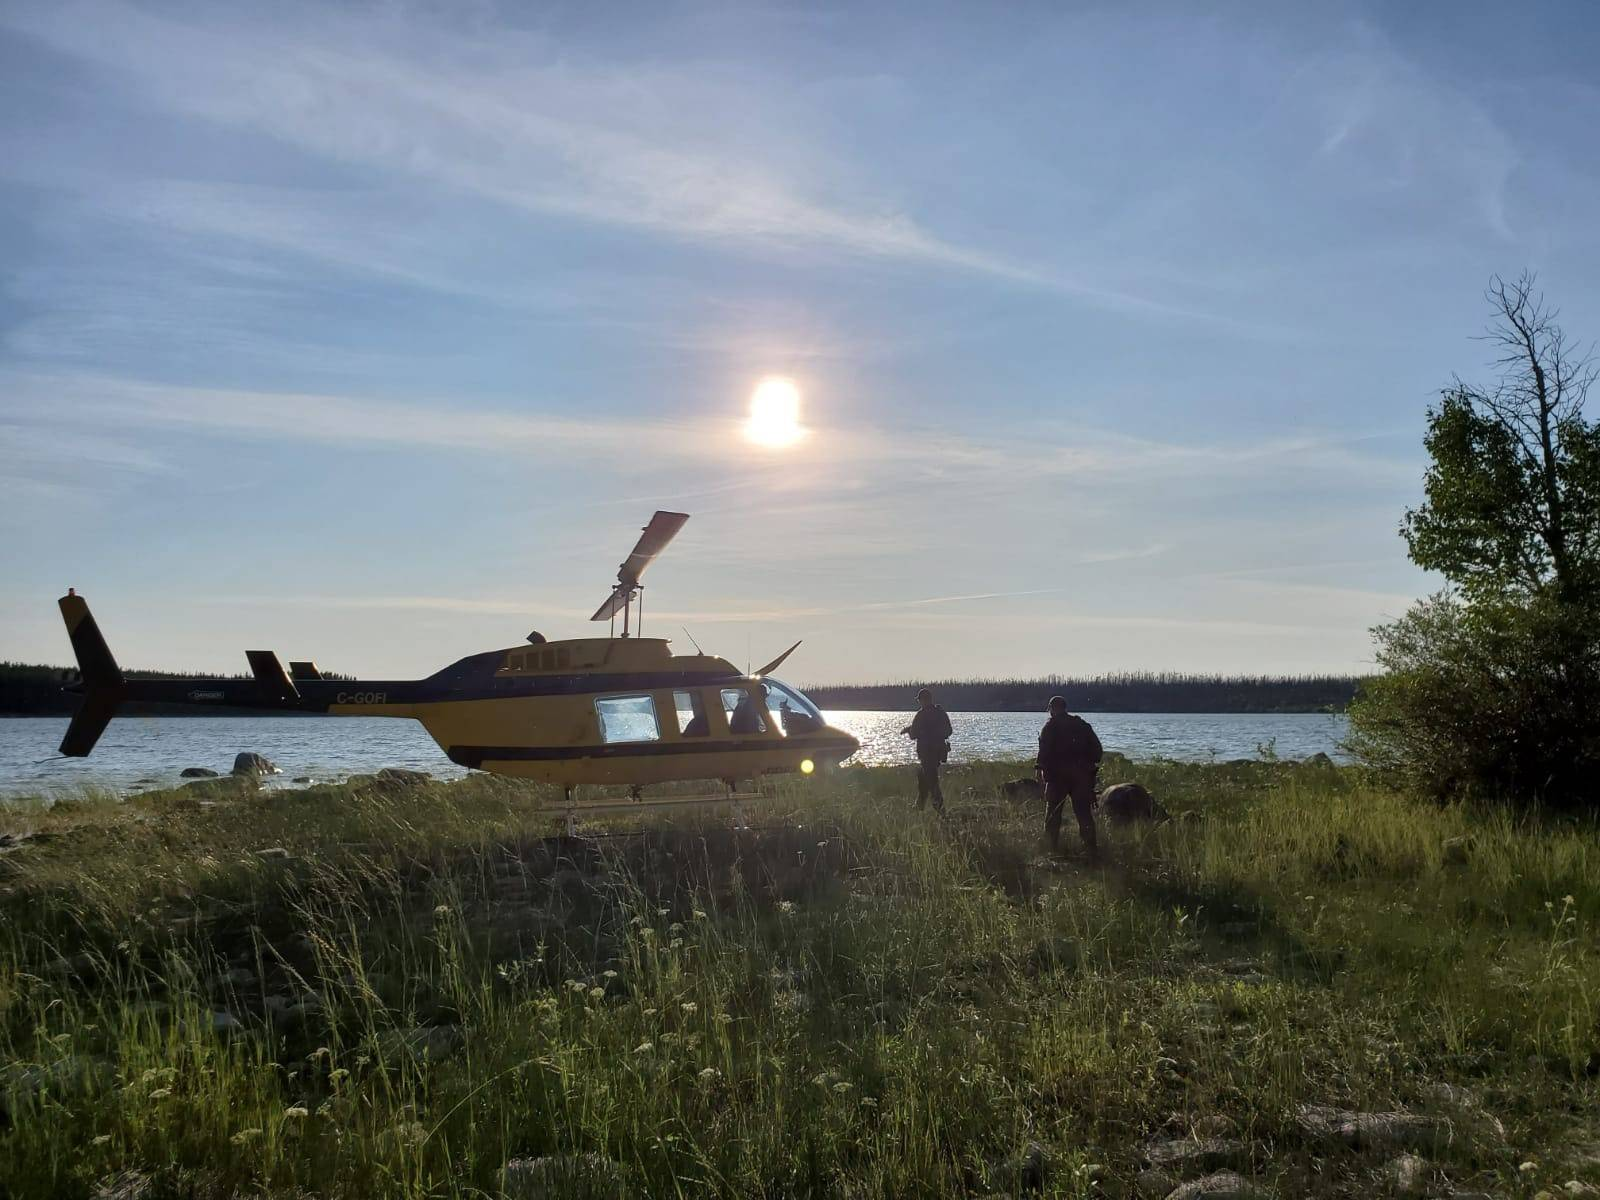 Officers look through a remote lake area alongside a landed helicopter in the Gillam, Man., area in July 28, 2019, police image published to social media. (Royal Canadian Mounted Police photo)